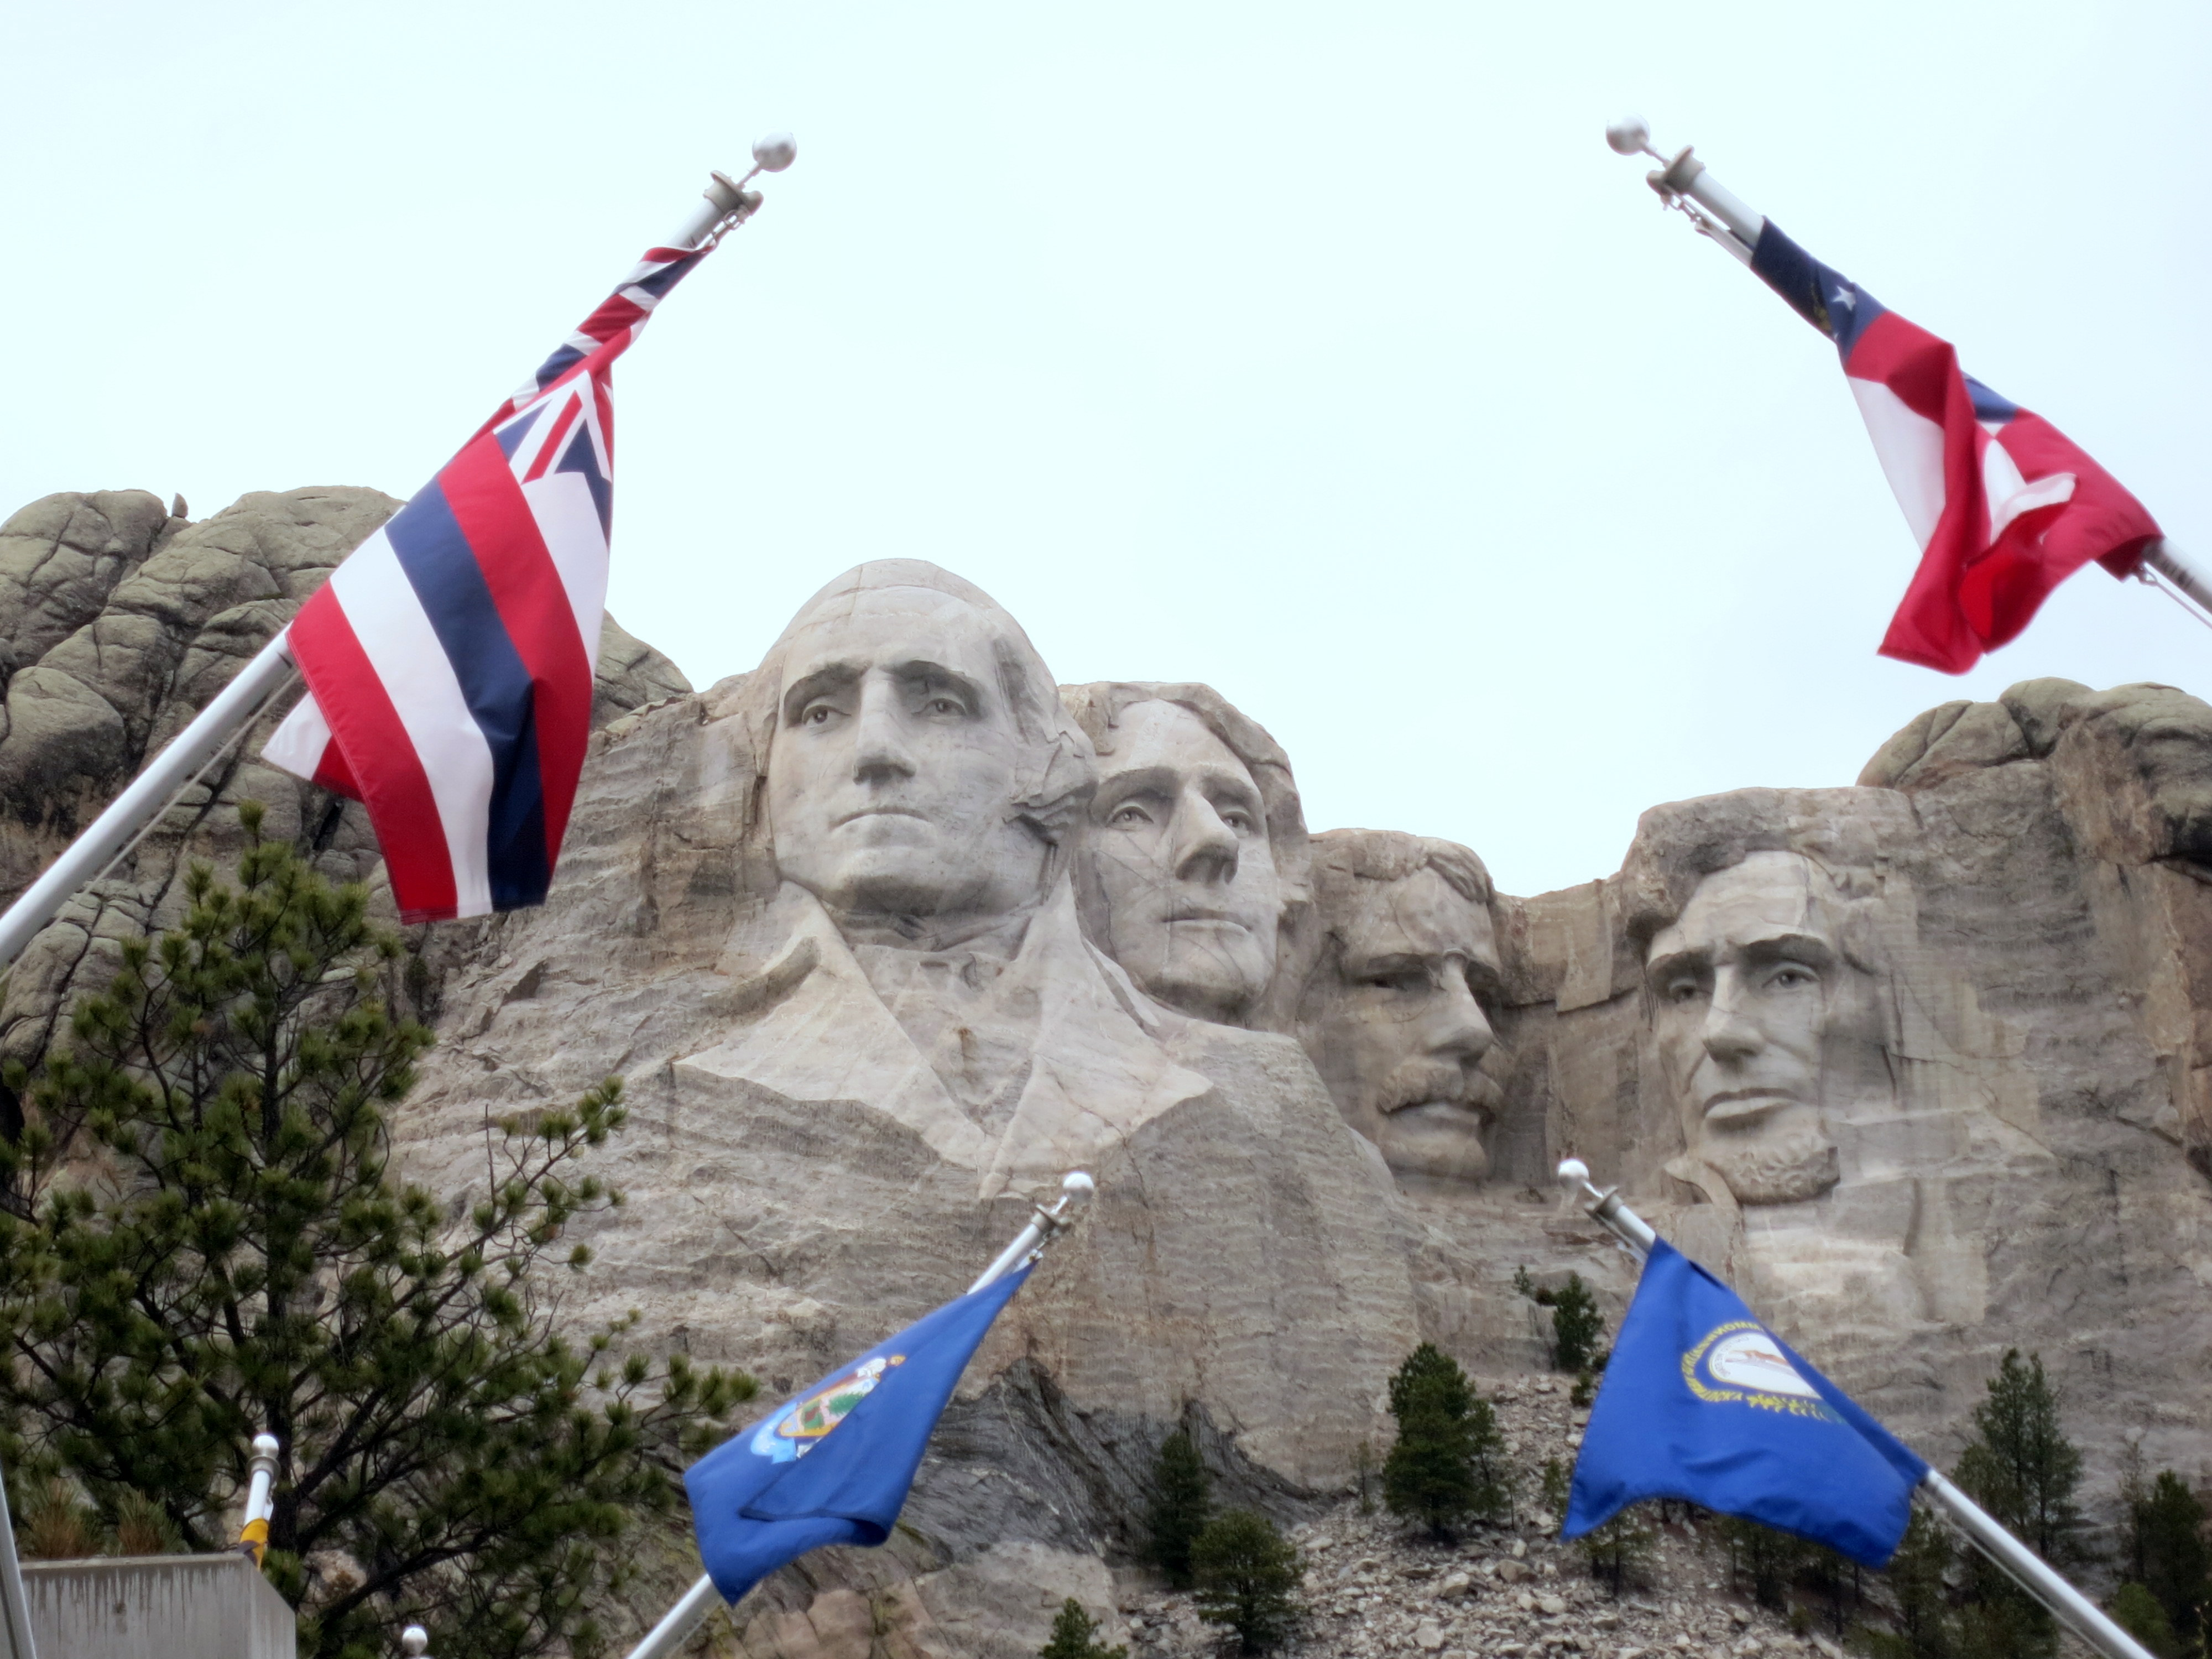 Mount Rushmore Bus Tours From Los Angeles